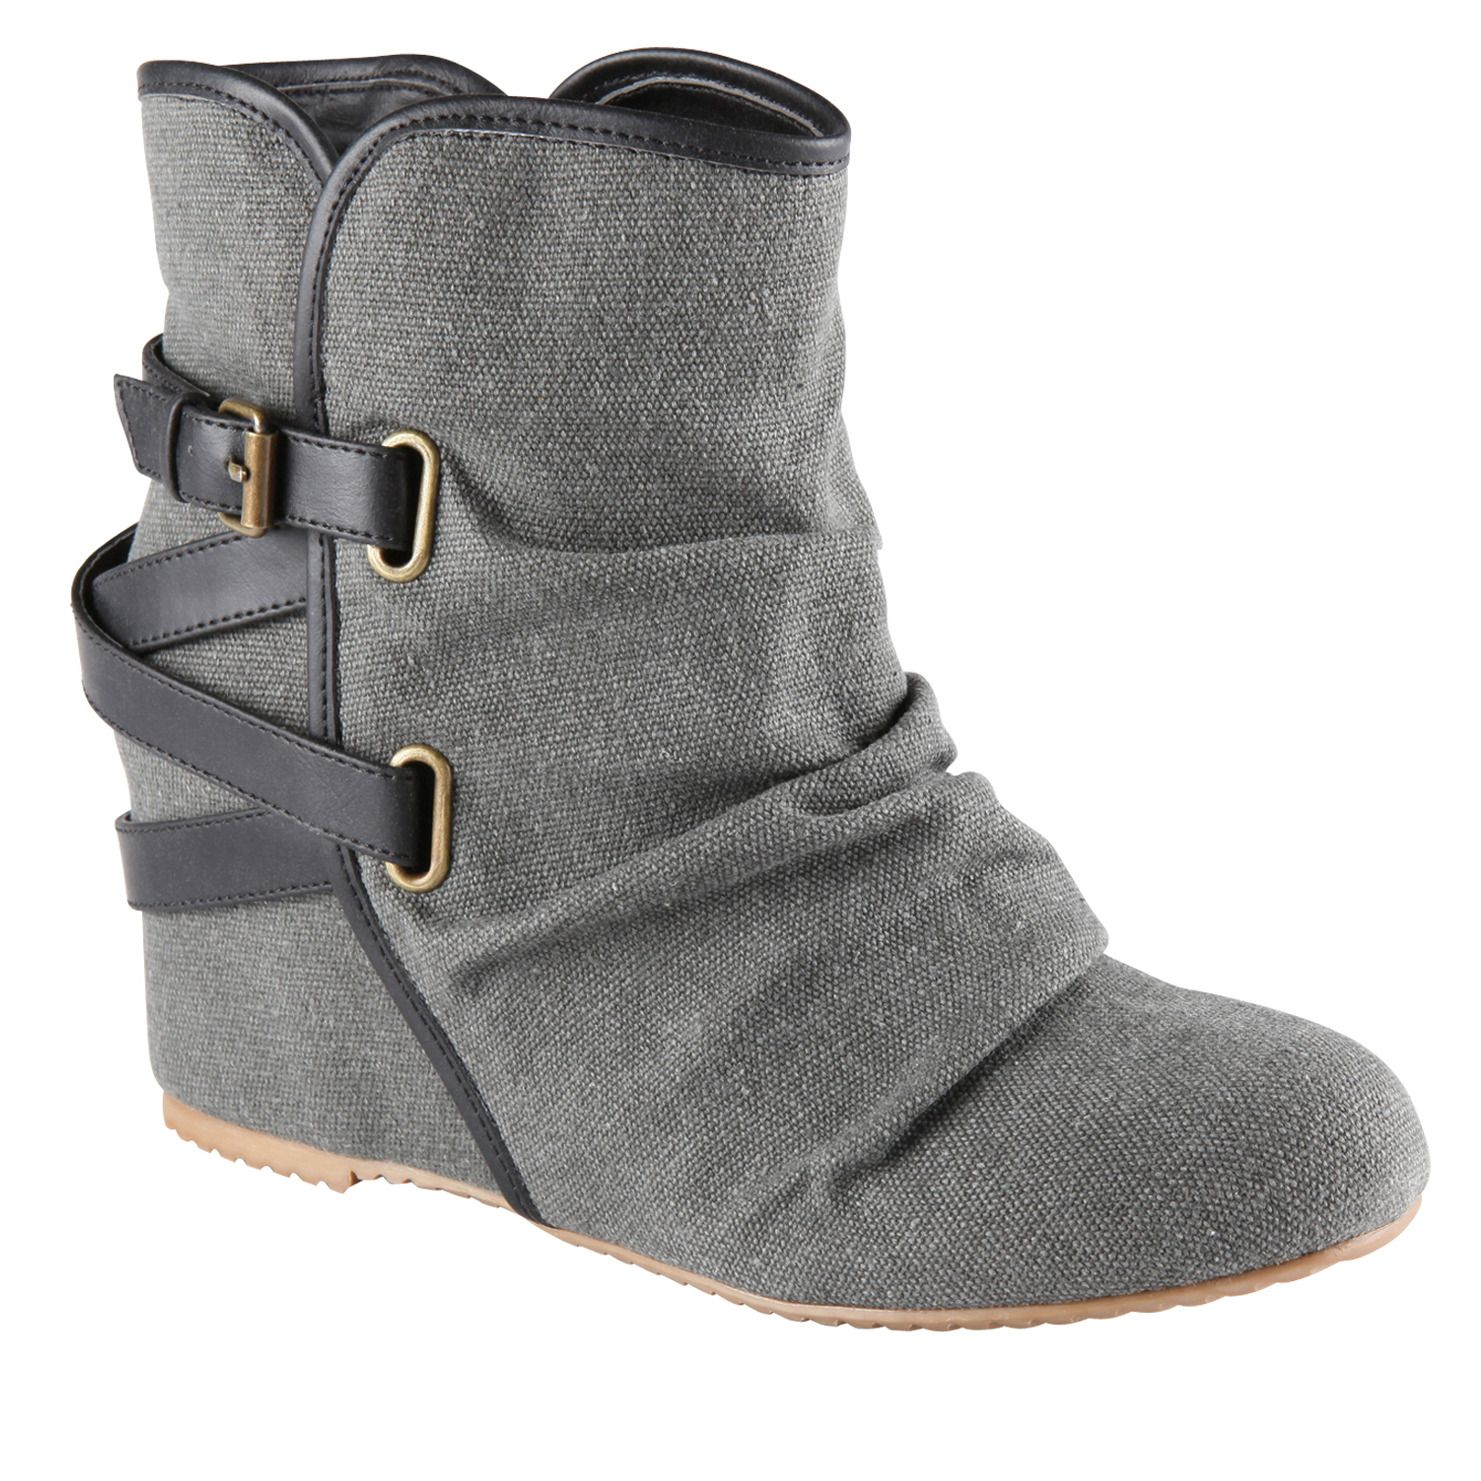 nennia s ankle boots boots for sale at aldo shoes